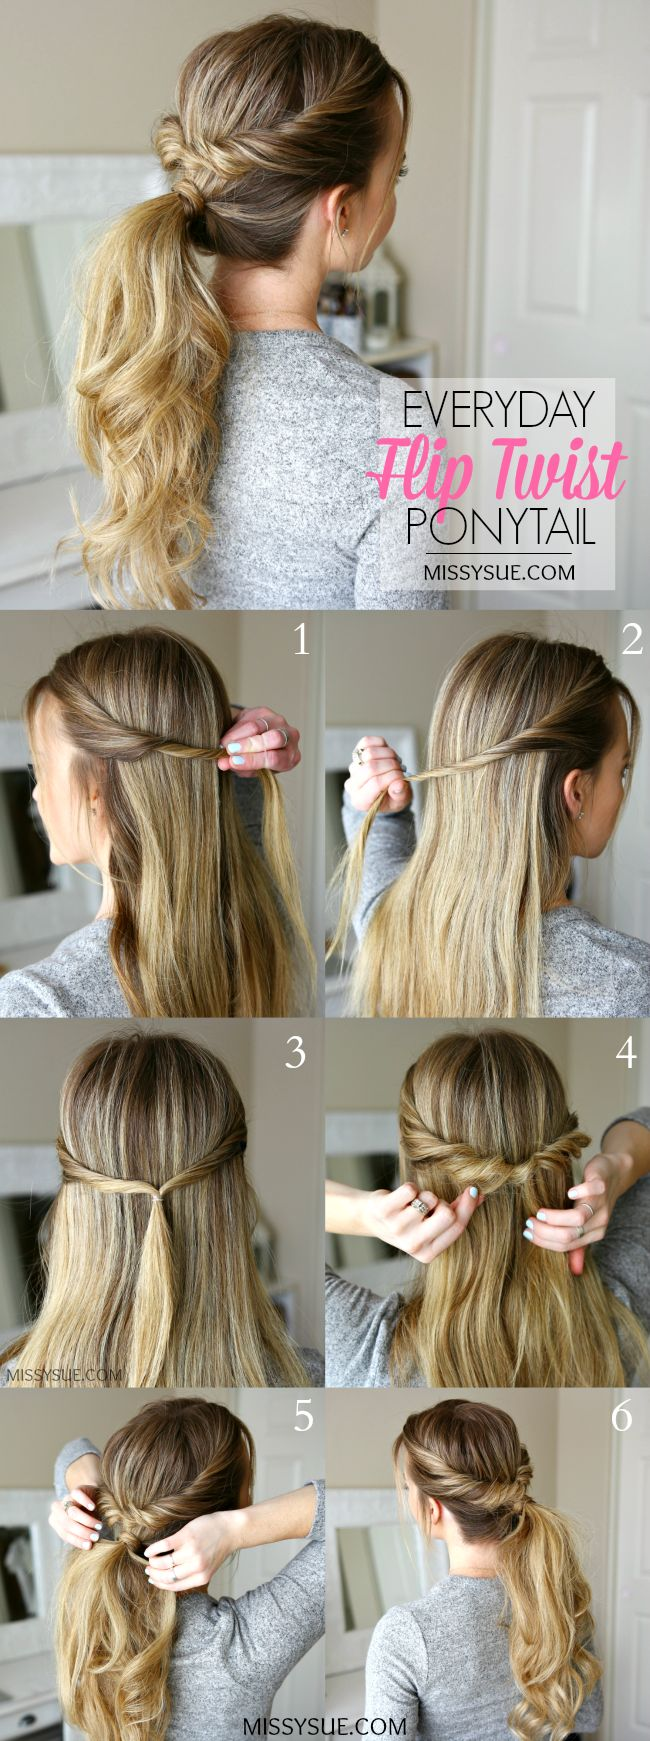 Ponytails Are Such A Great Goto Hairstyle They're Quick, Easy